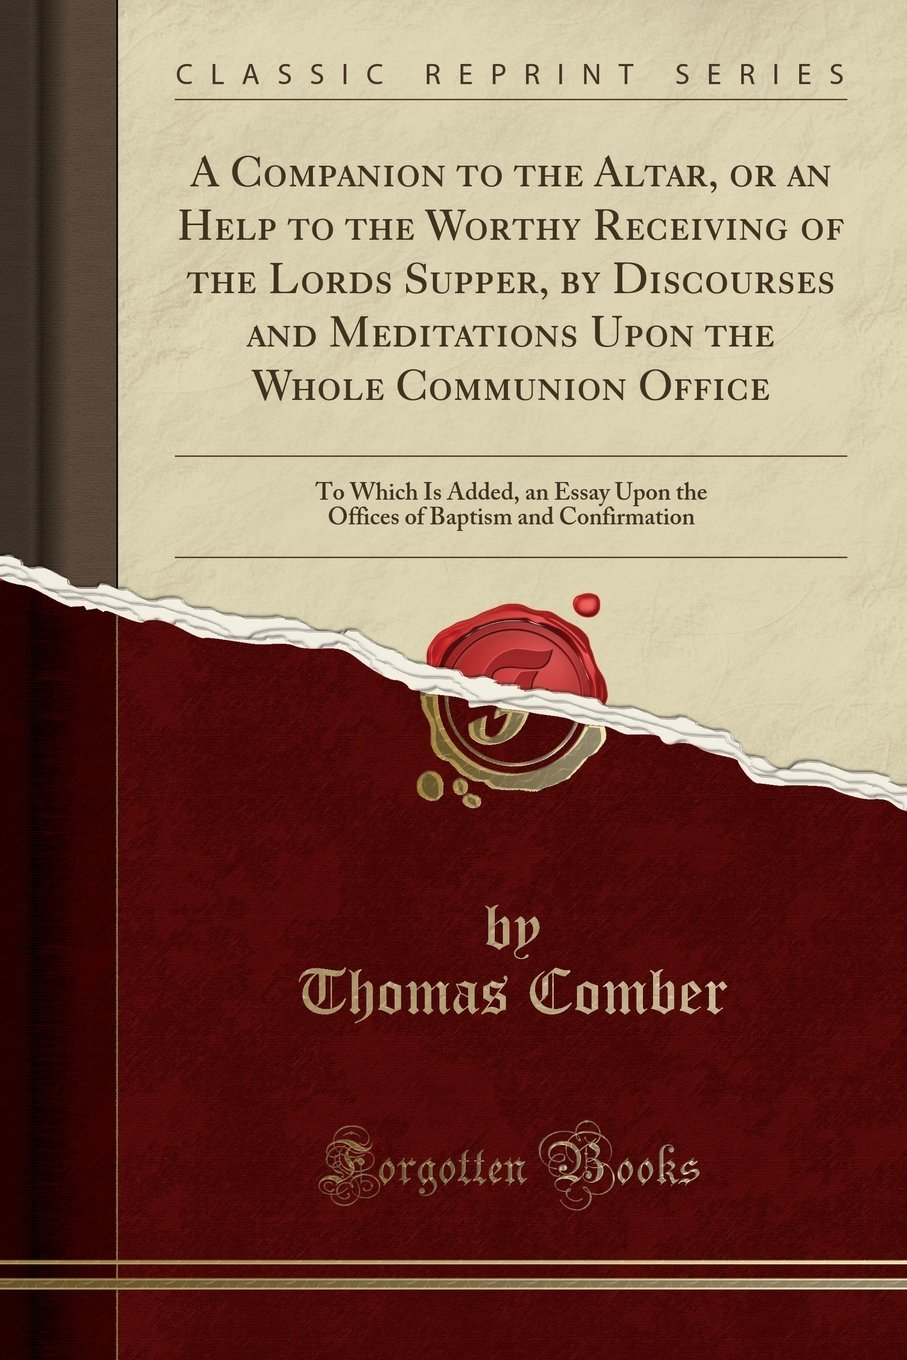 Read Online A Companion to the Altar, or an Help to the Worthy Receiving of the Lords Supper, by Discourses and Meditations Upon the Whole Communion Office: To ... of Baptism and Confirmation (Classic Reprint) PDF